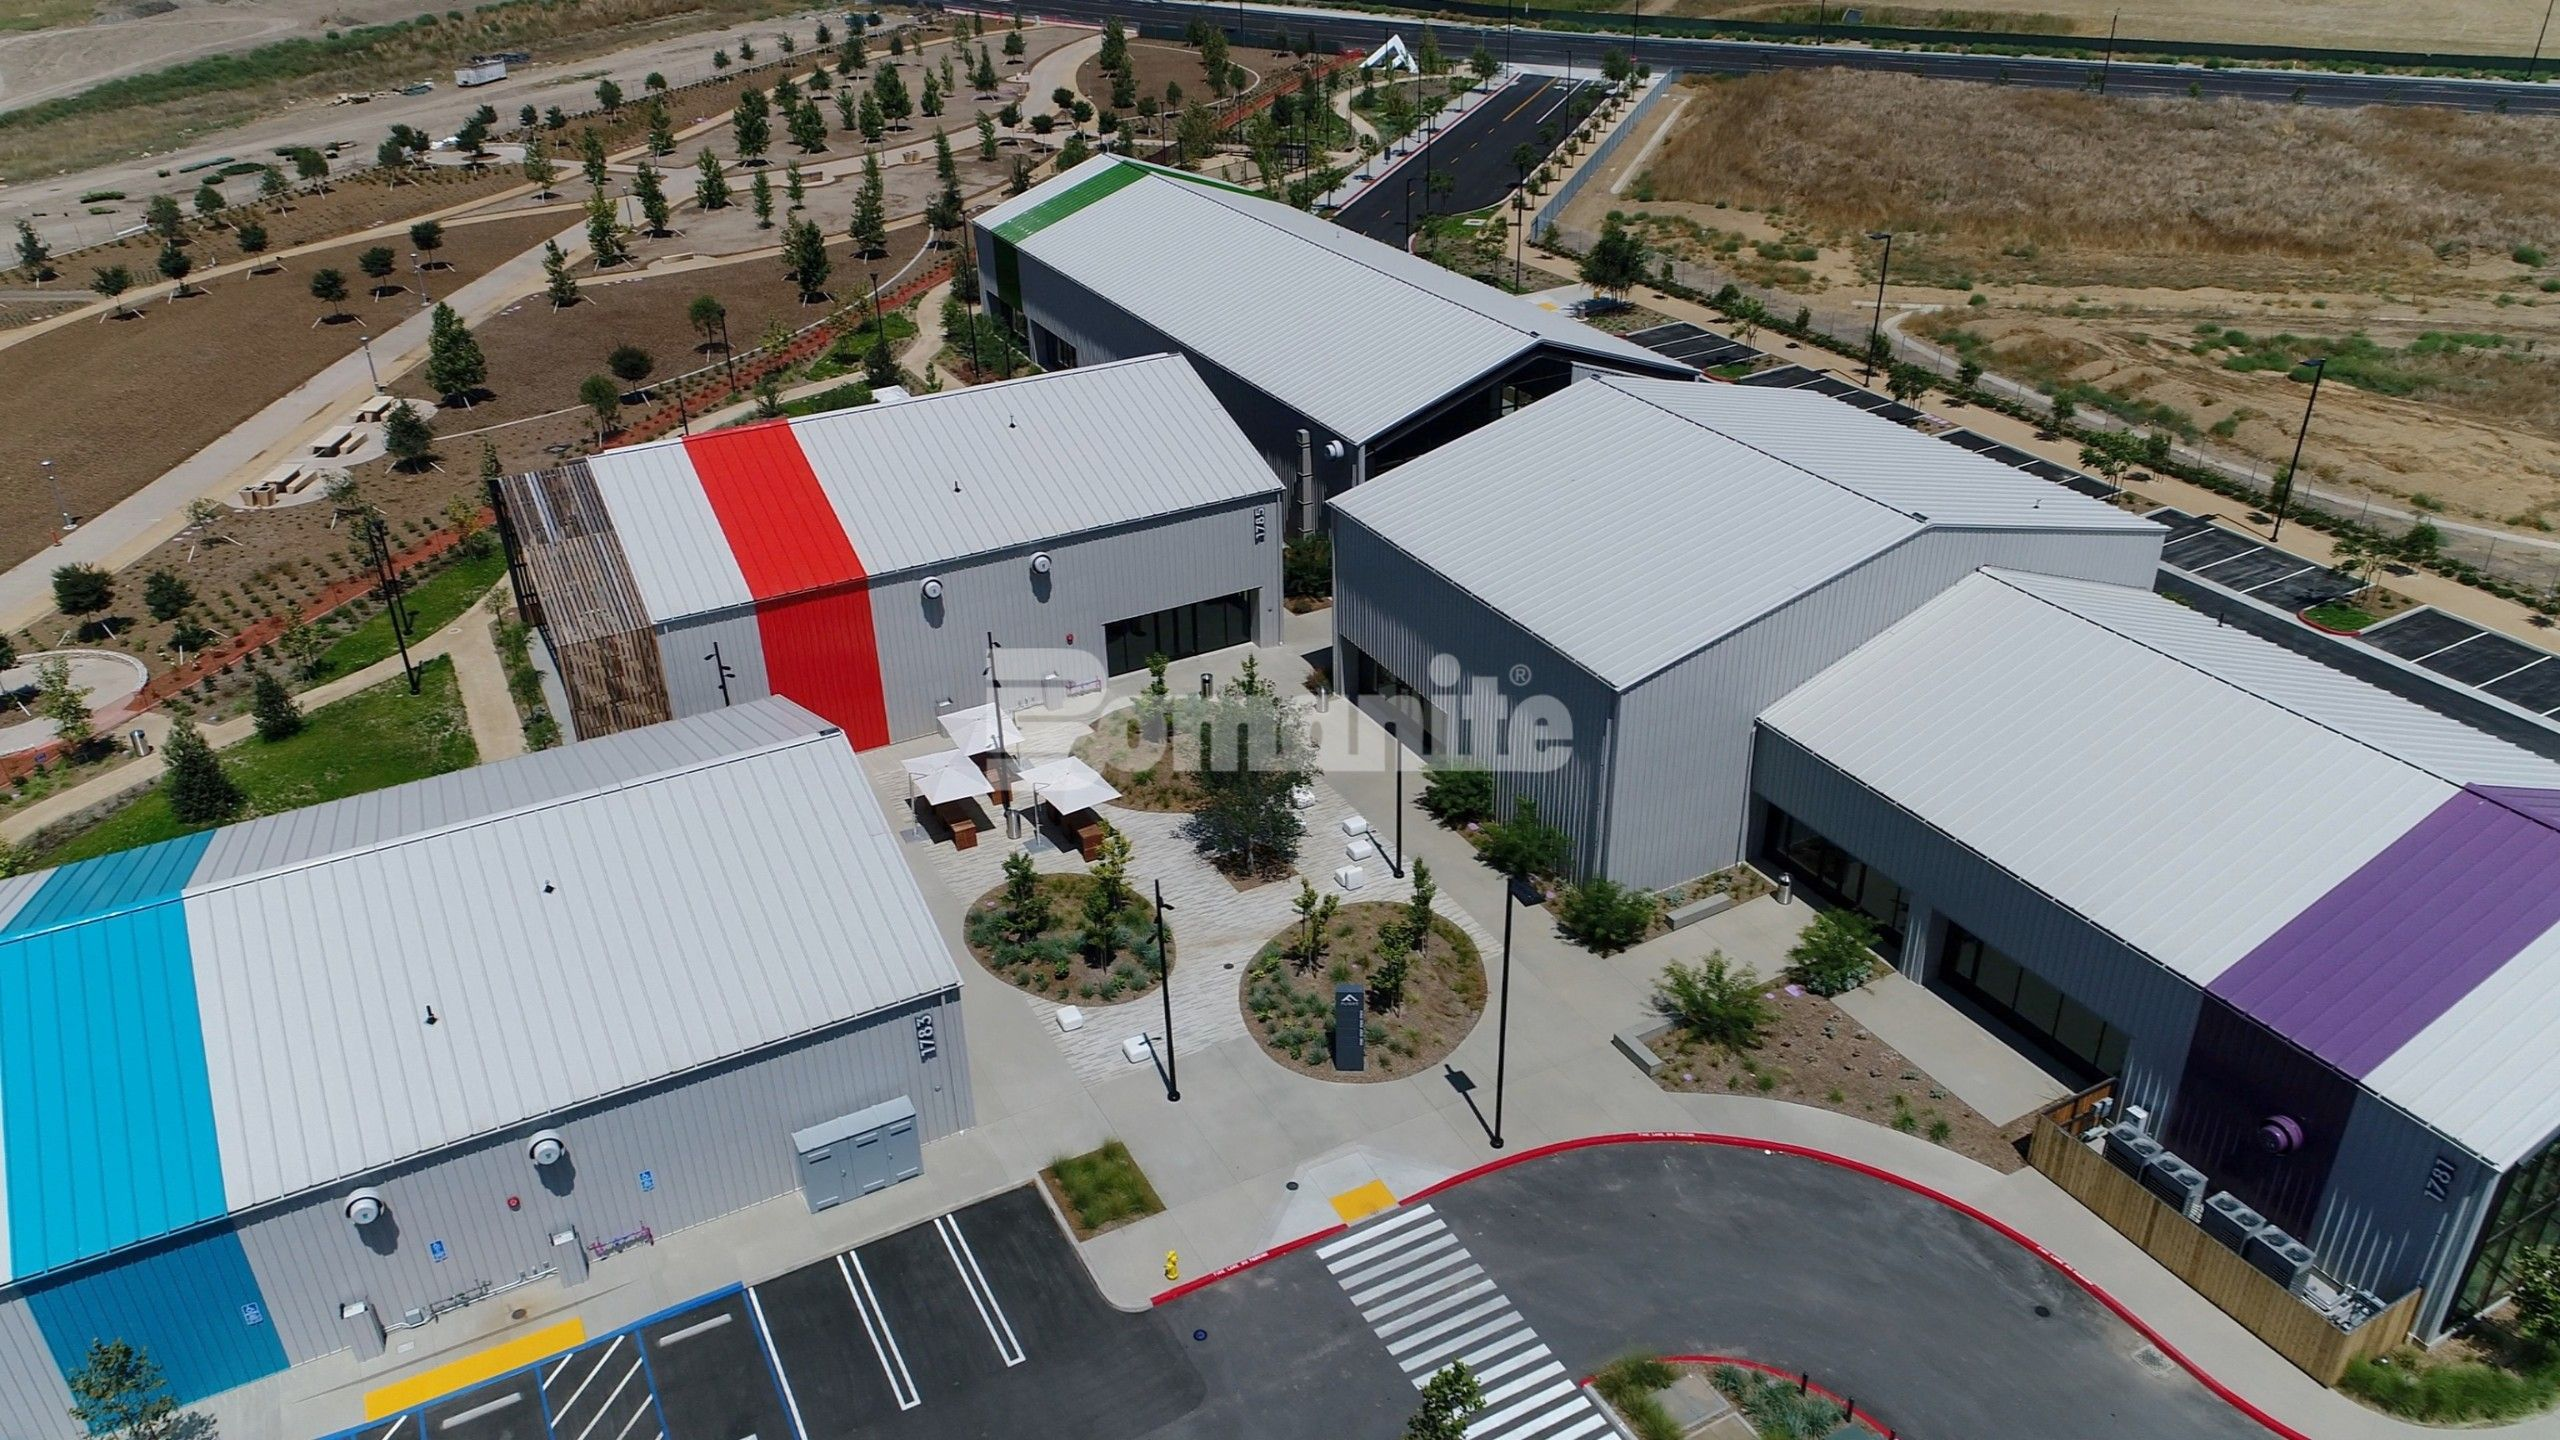 Flight At Tustin Legacy in Tustin, CA, features decorative concrete landscapes of Bomanite Revealed Exposed Aggregate Systems installed by Bomel Construction.